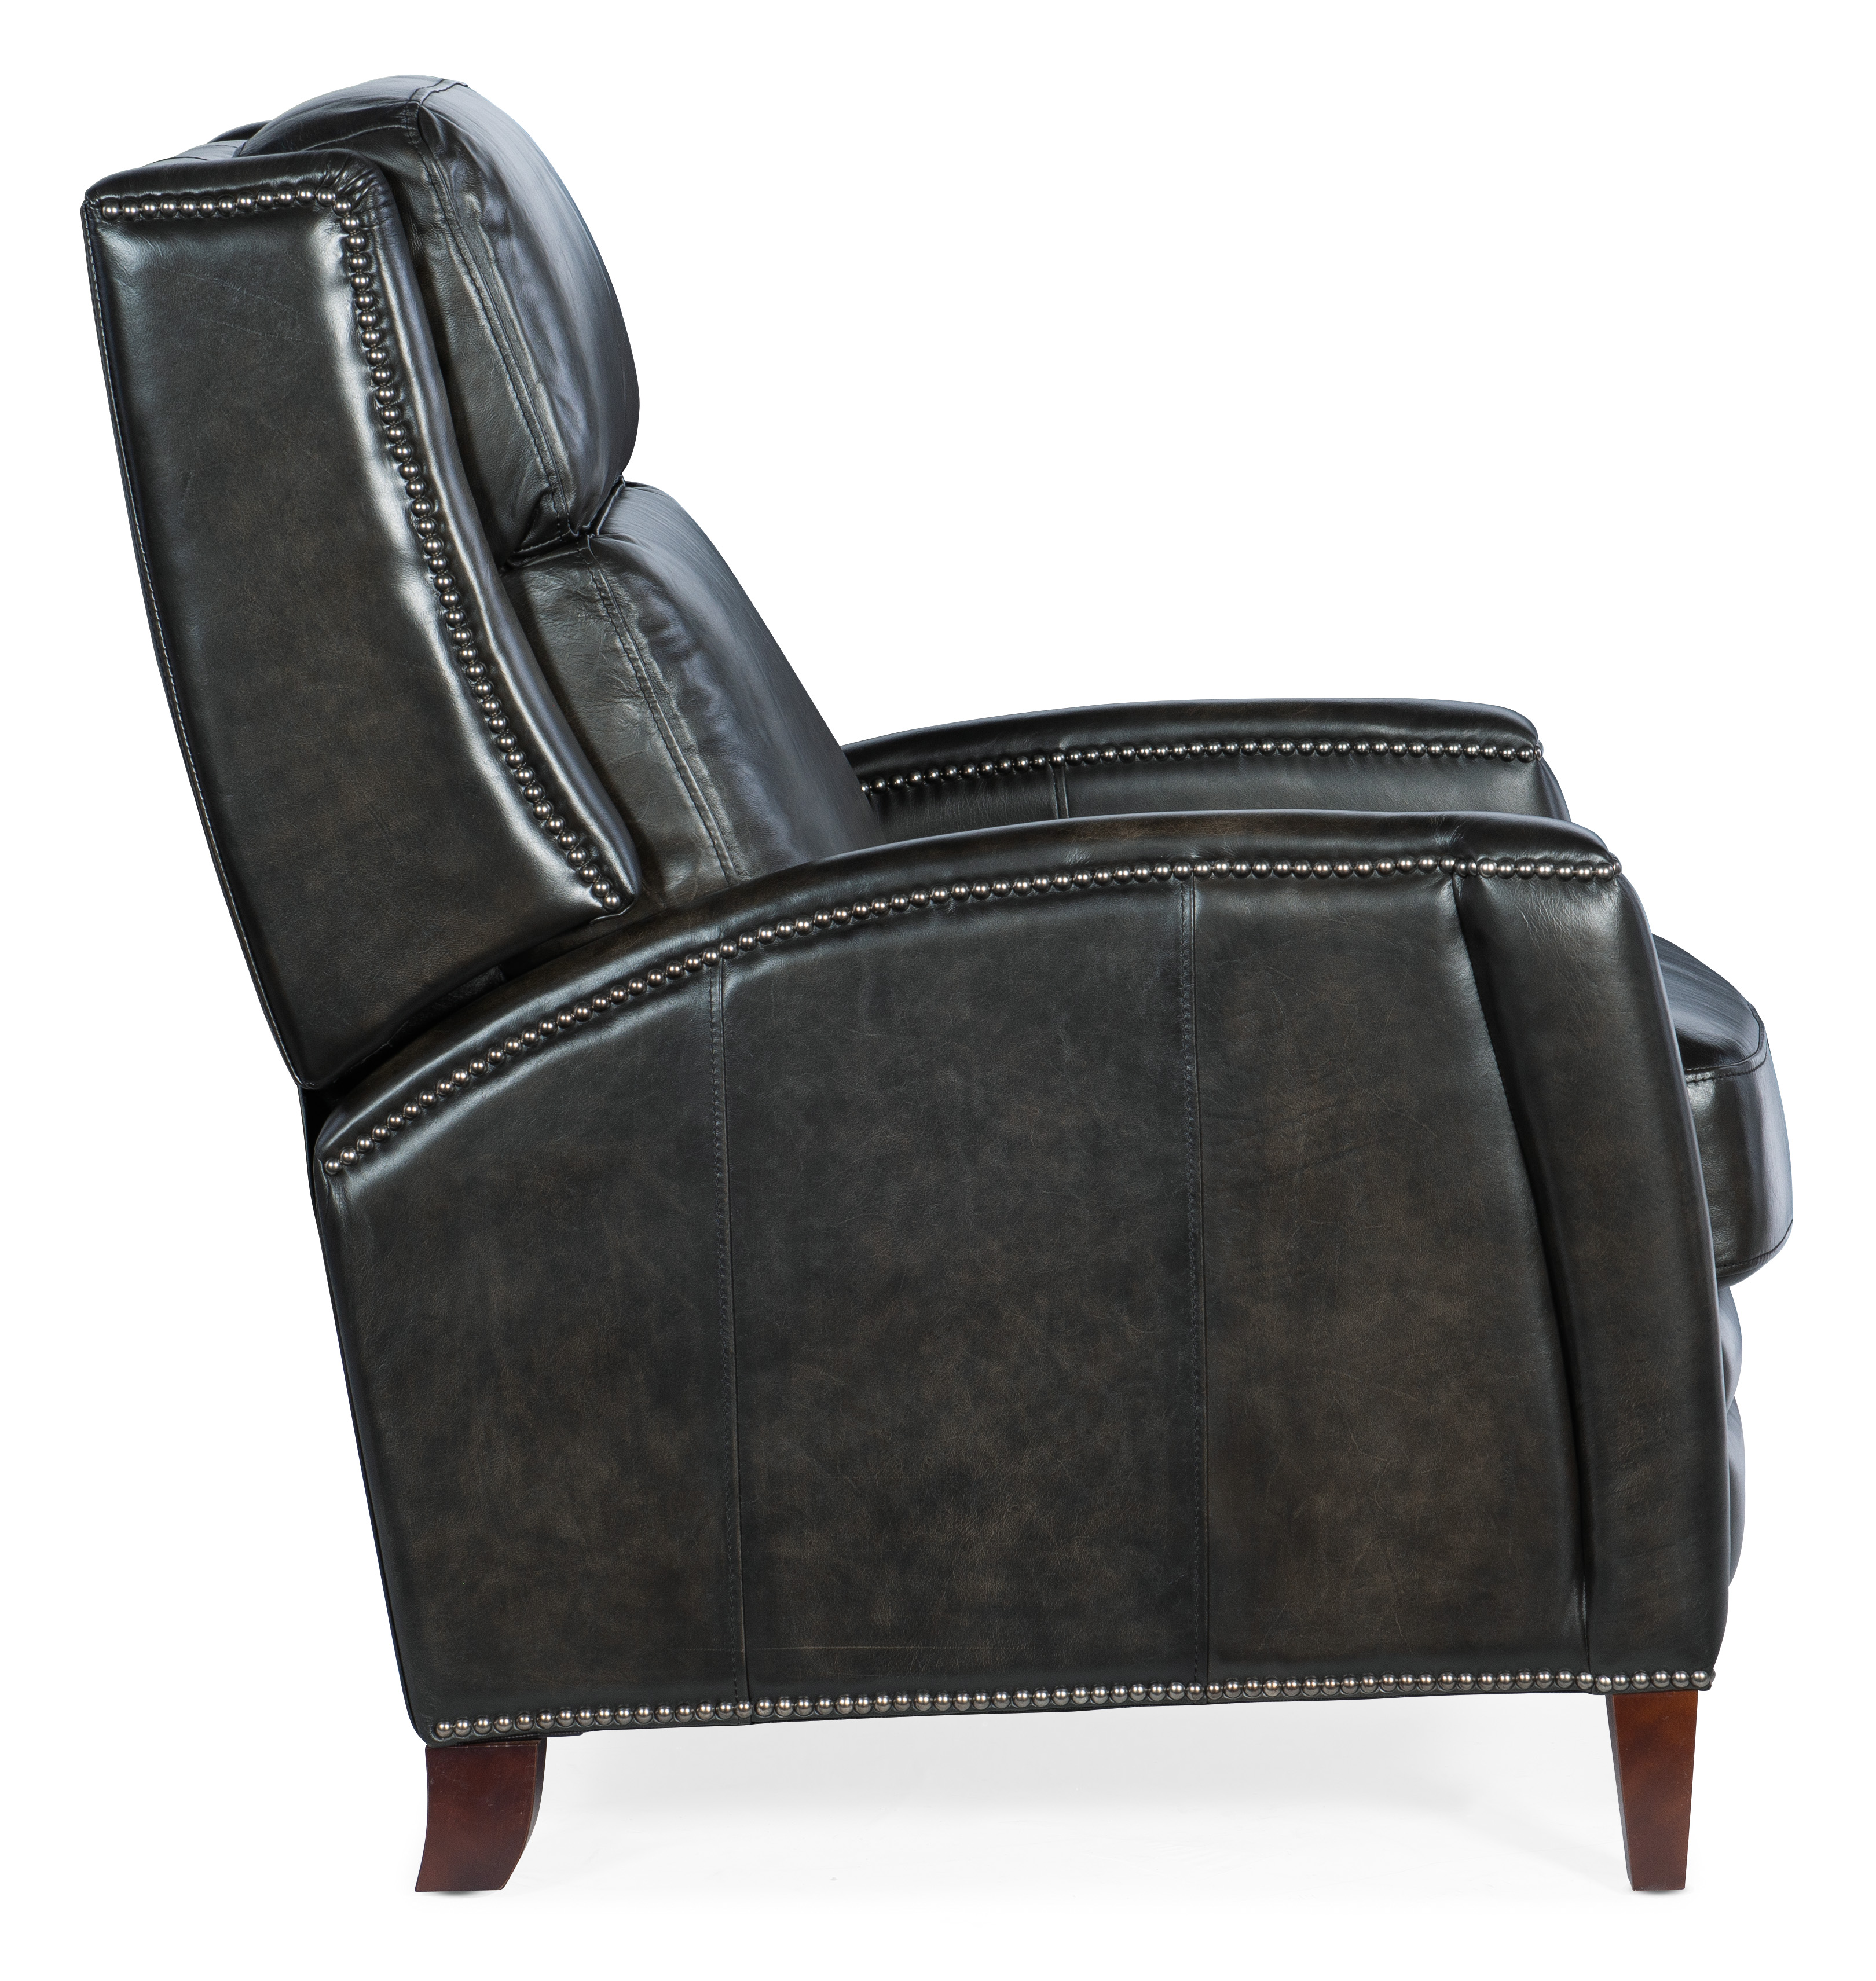 Declan Manual Push Back Recliner By Hooker Furniture Nis898166373 Riley S Furniture Mattress